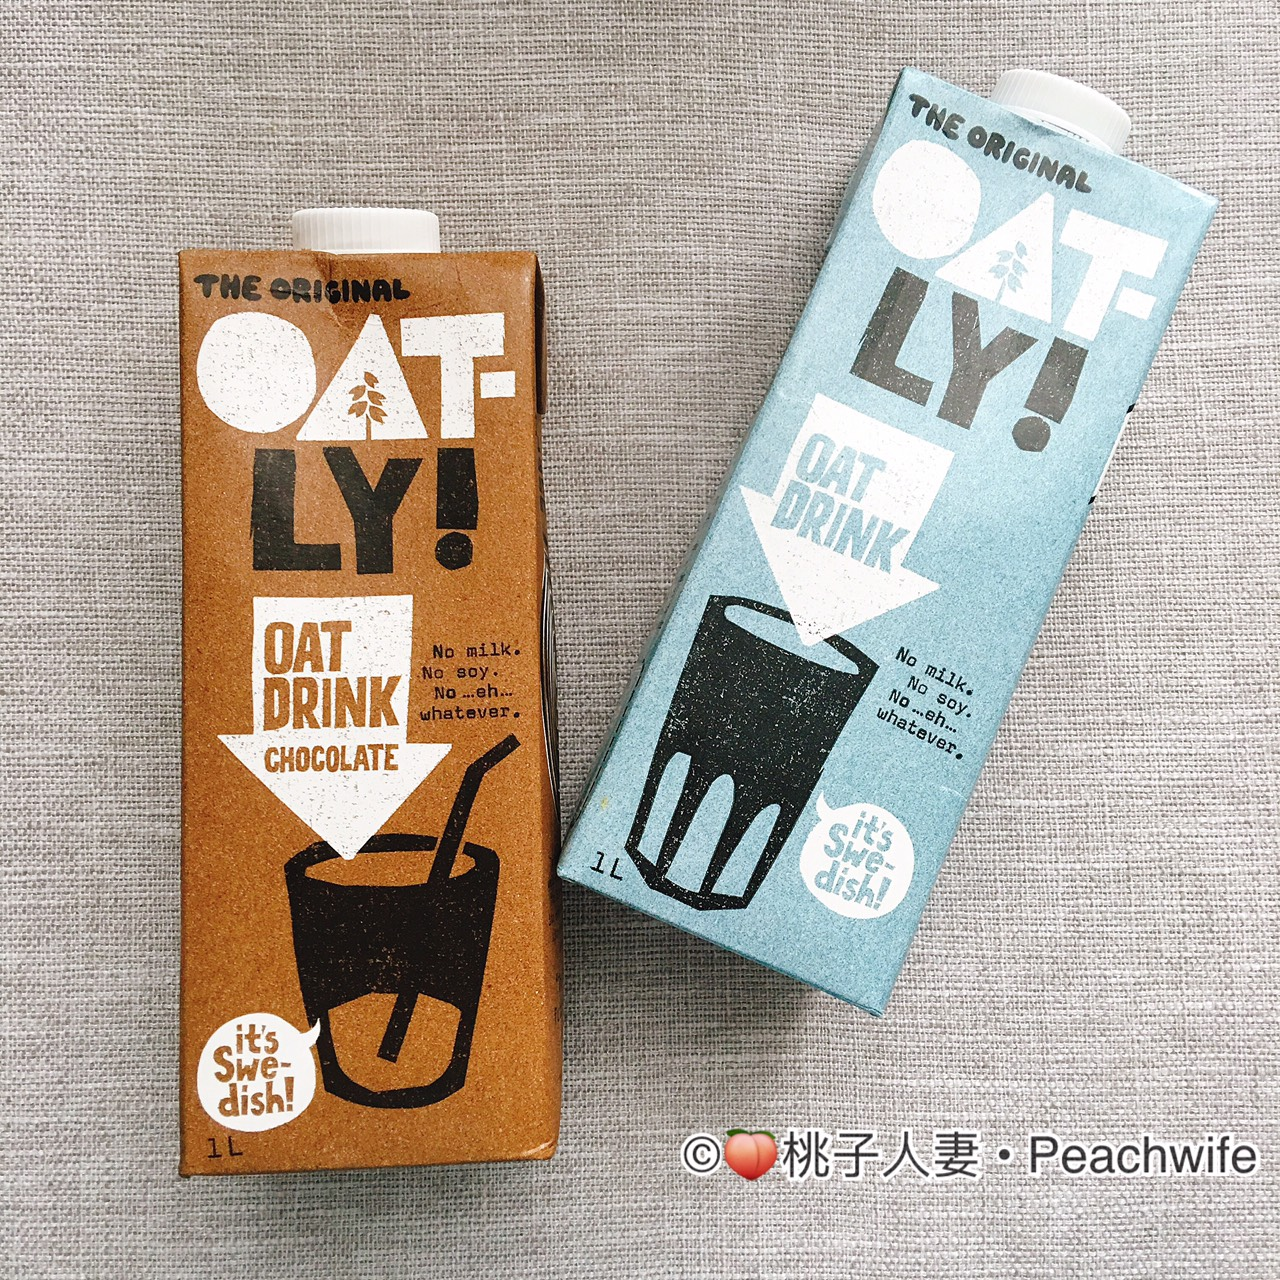 Oatly oat drink chocolate